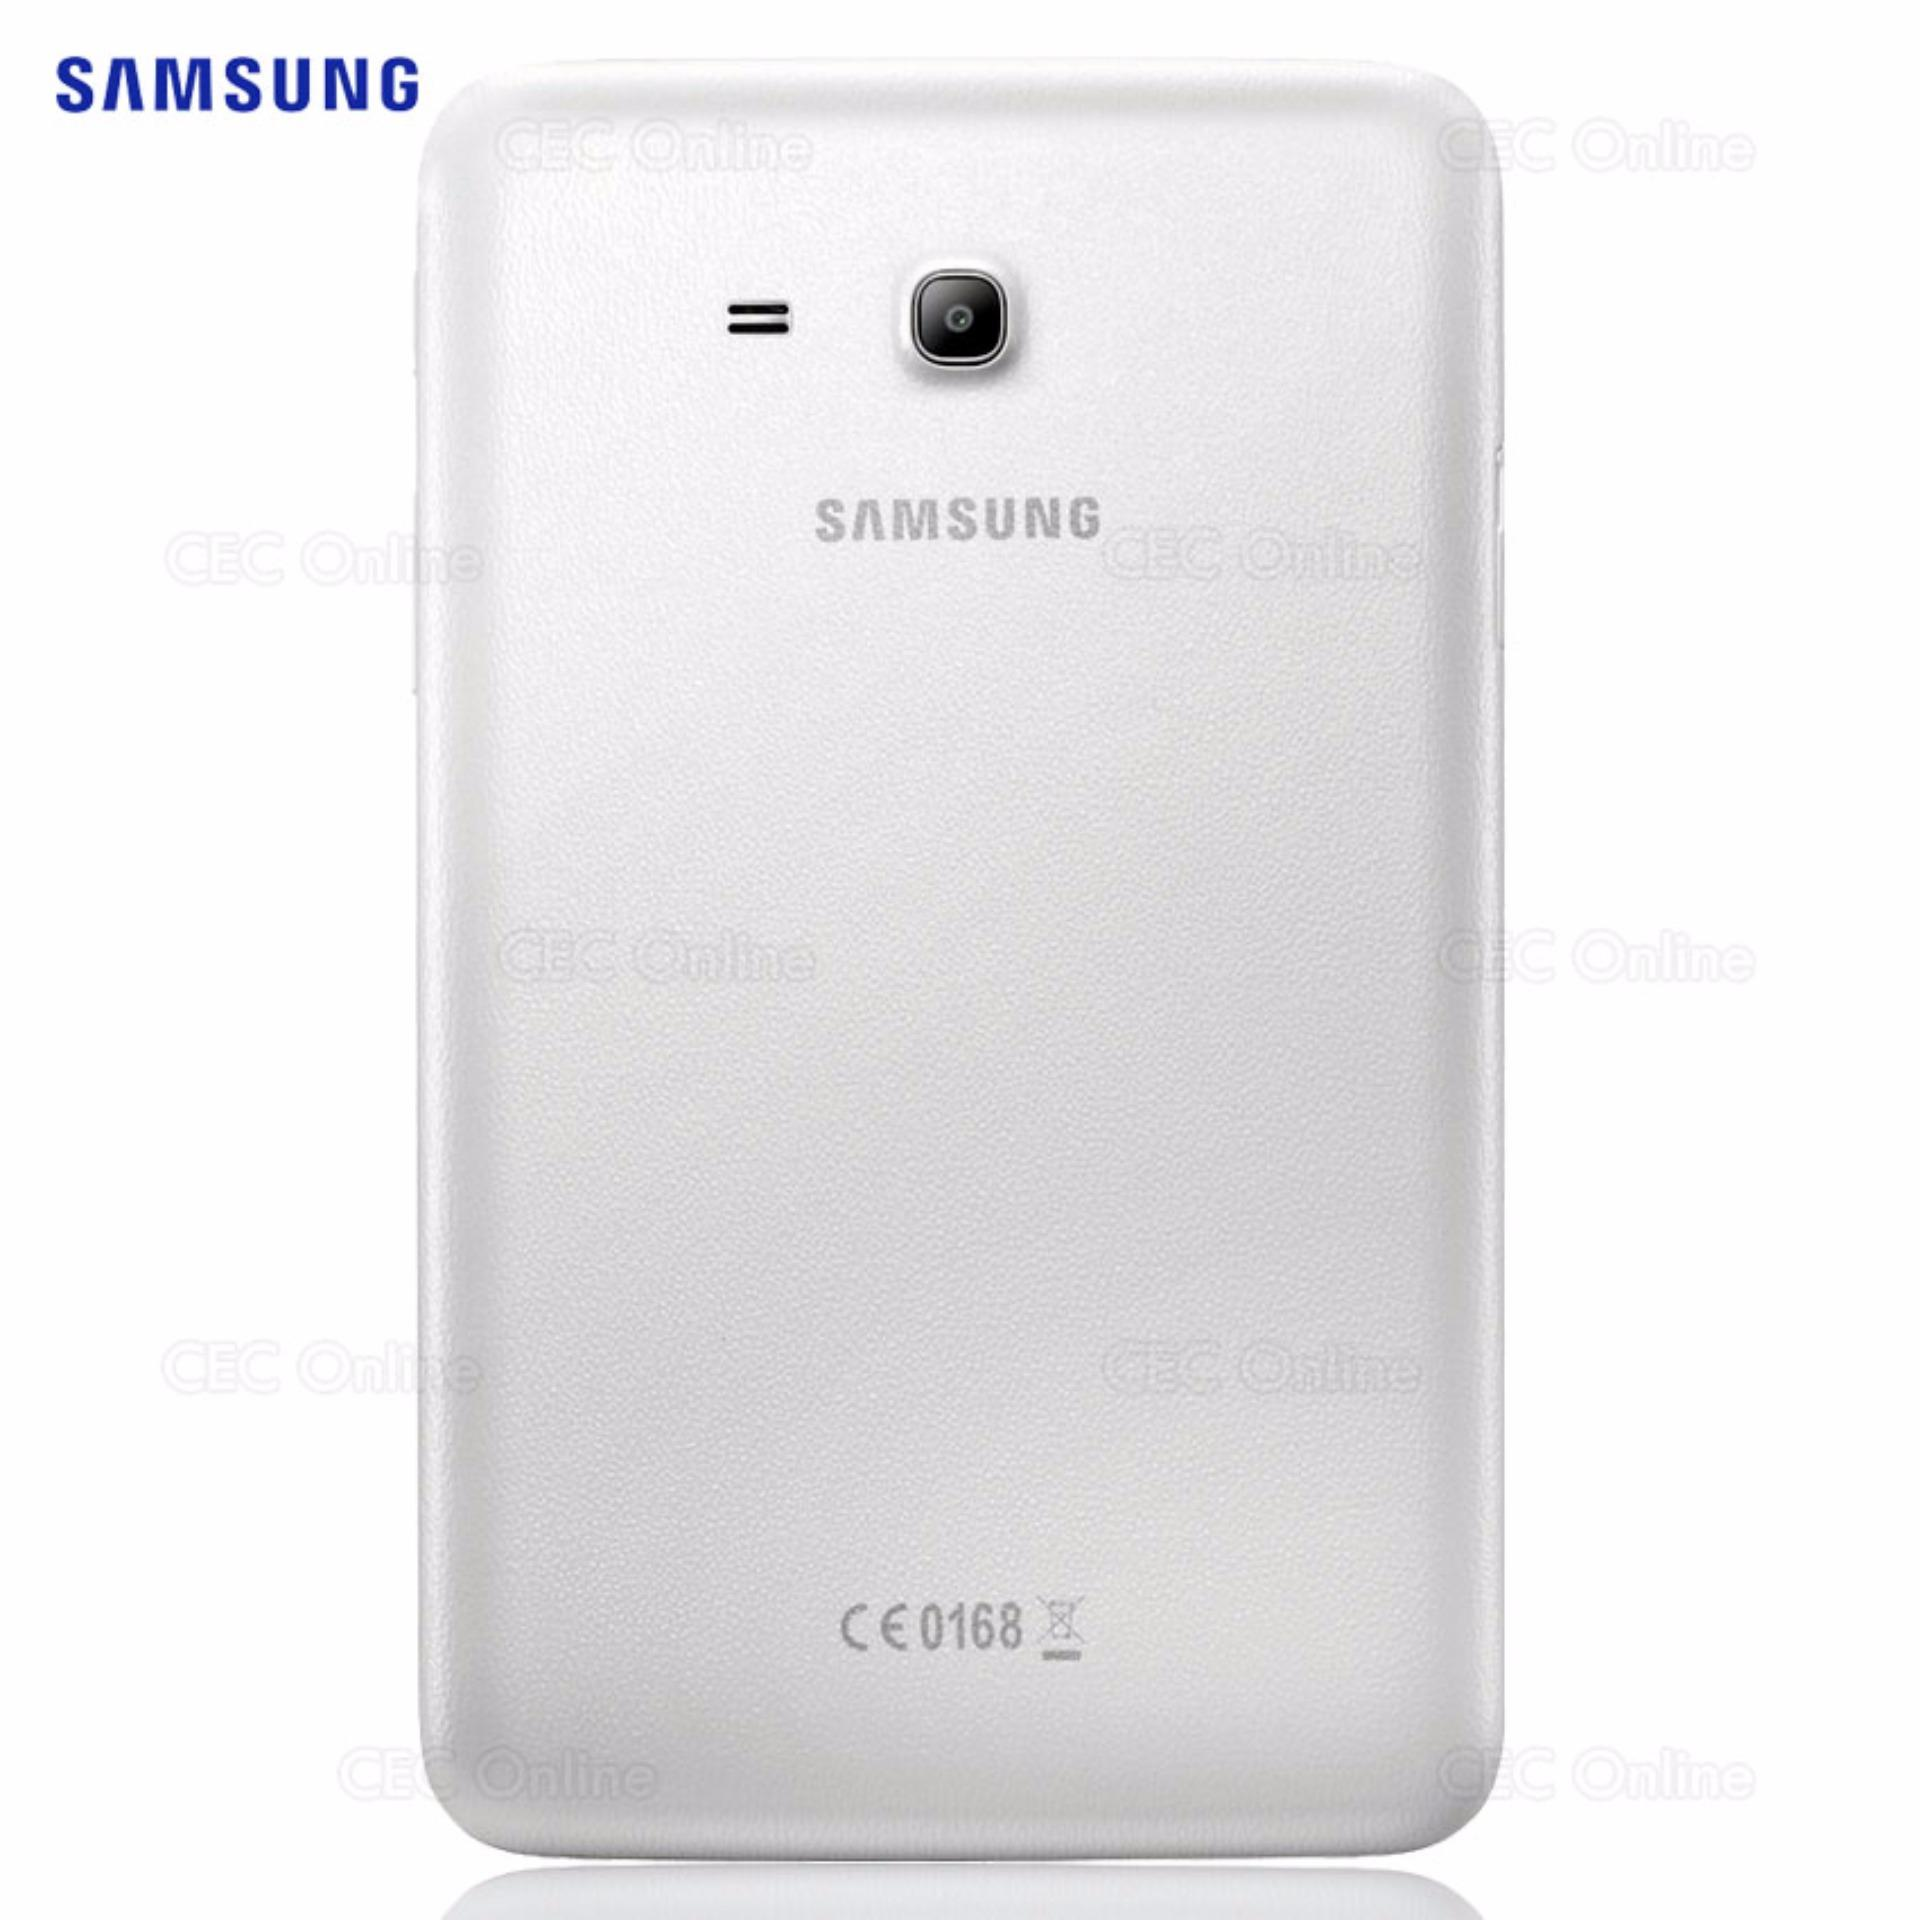 Samsung Galaxy Tab 3v Philippines 8gb 3g Sim Slot Sm T116nu Cream White